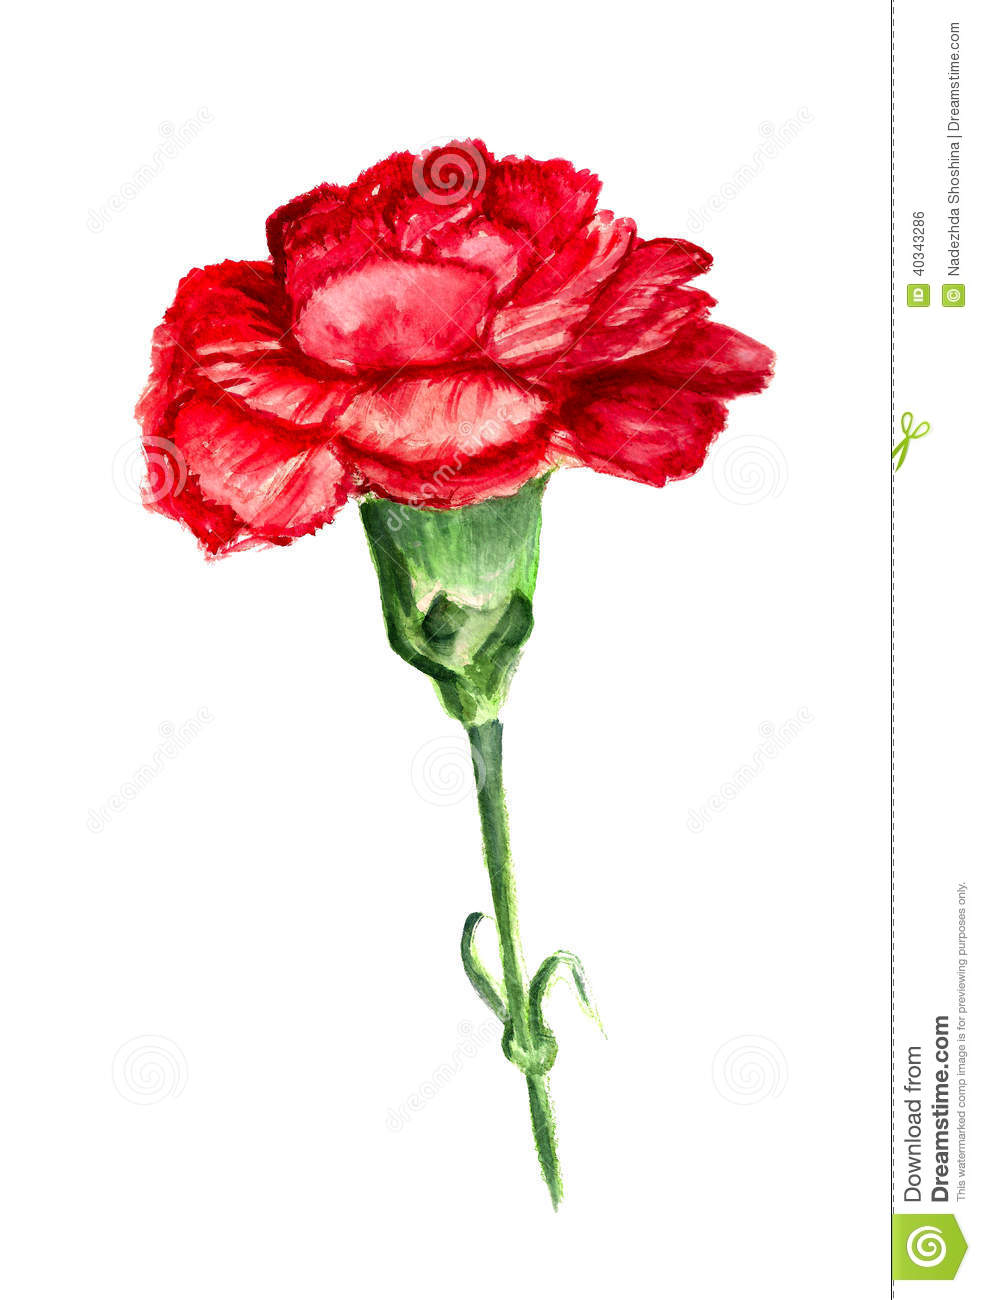 Watercolor image of red flower of carnation on white background.